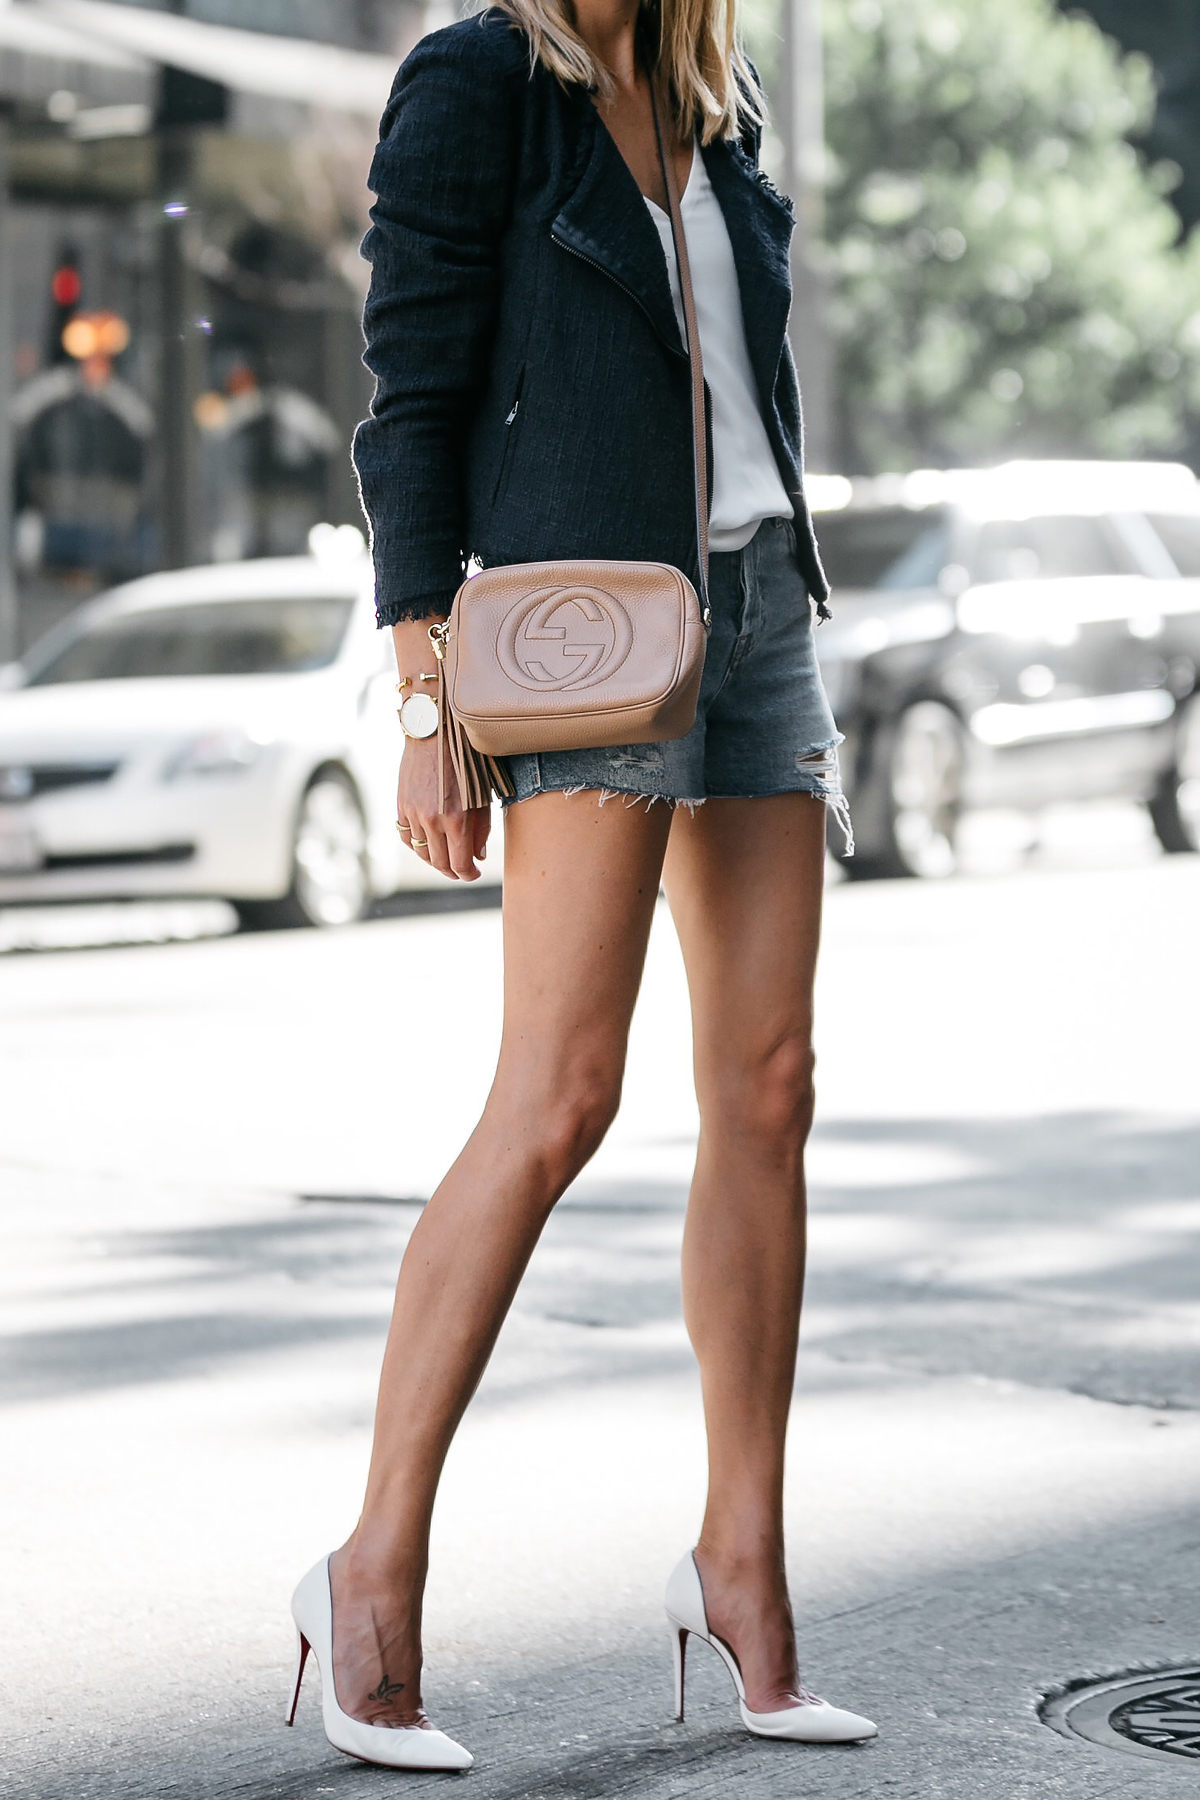 Nordstrom Anniversary Sale Navy Tweed Jacket White Cami Topshop Denim Ripped Shorts Outfit Christian Louboutin White Pumps Gucci Soho Handbag Fashion Jackson Dallas Blogger Fashion Blogger Street Style